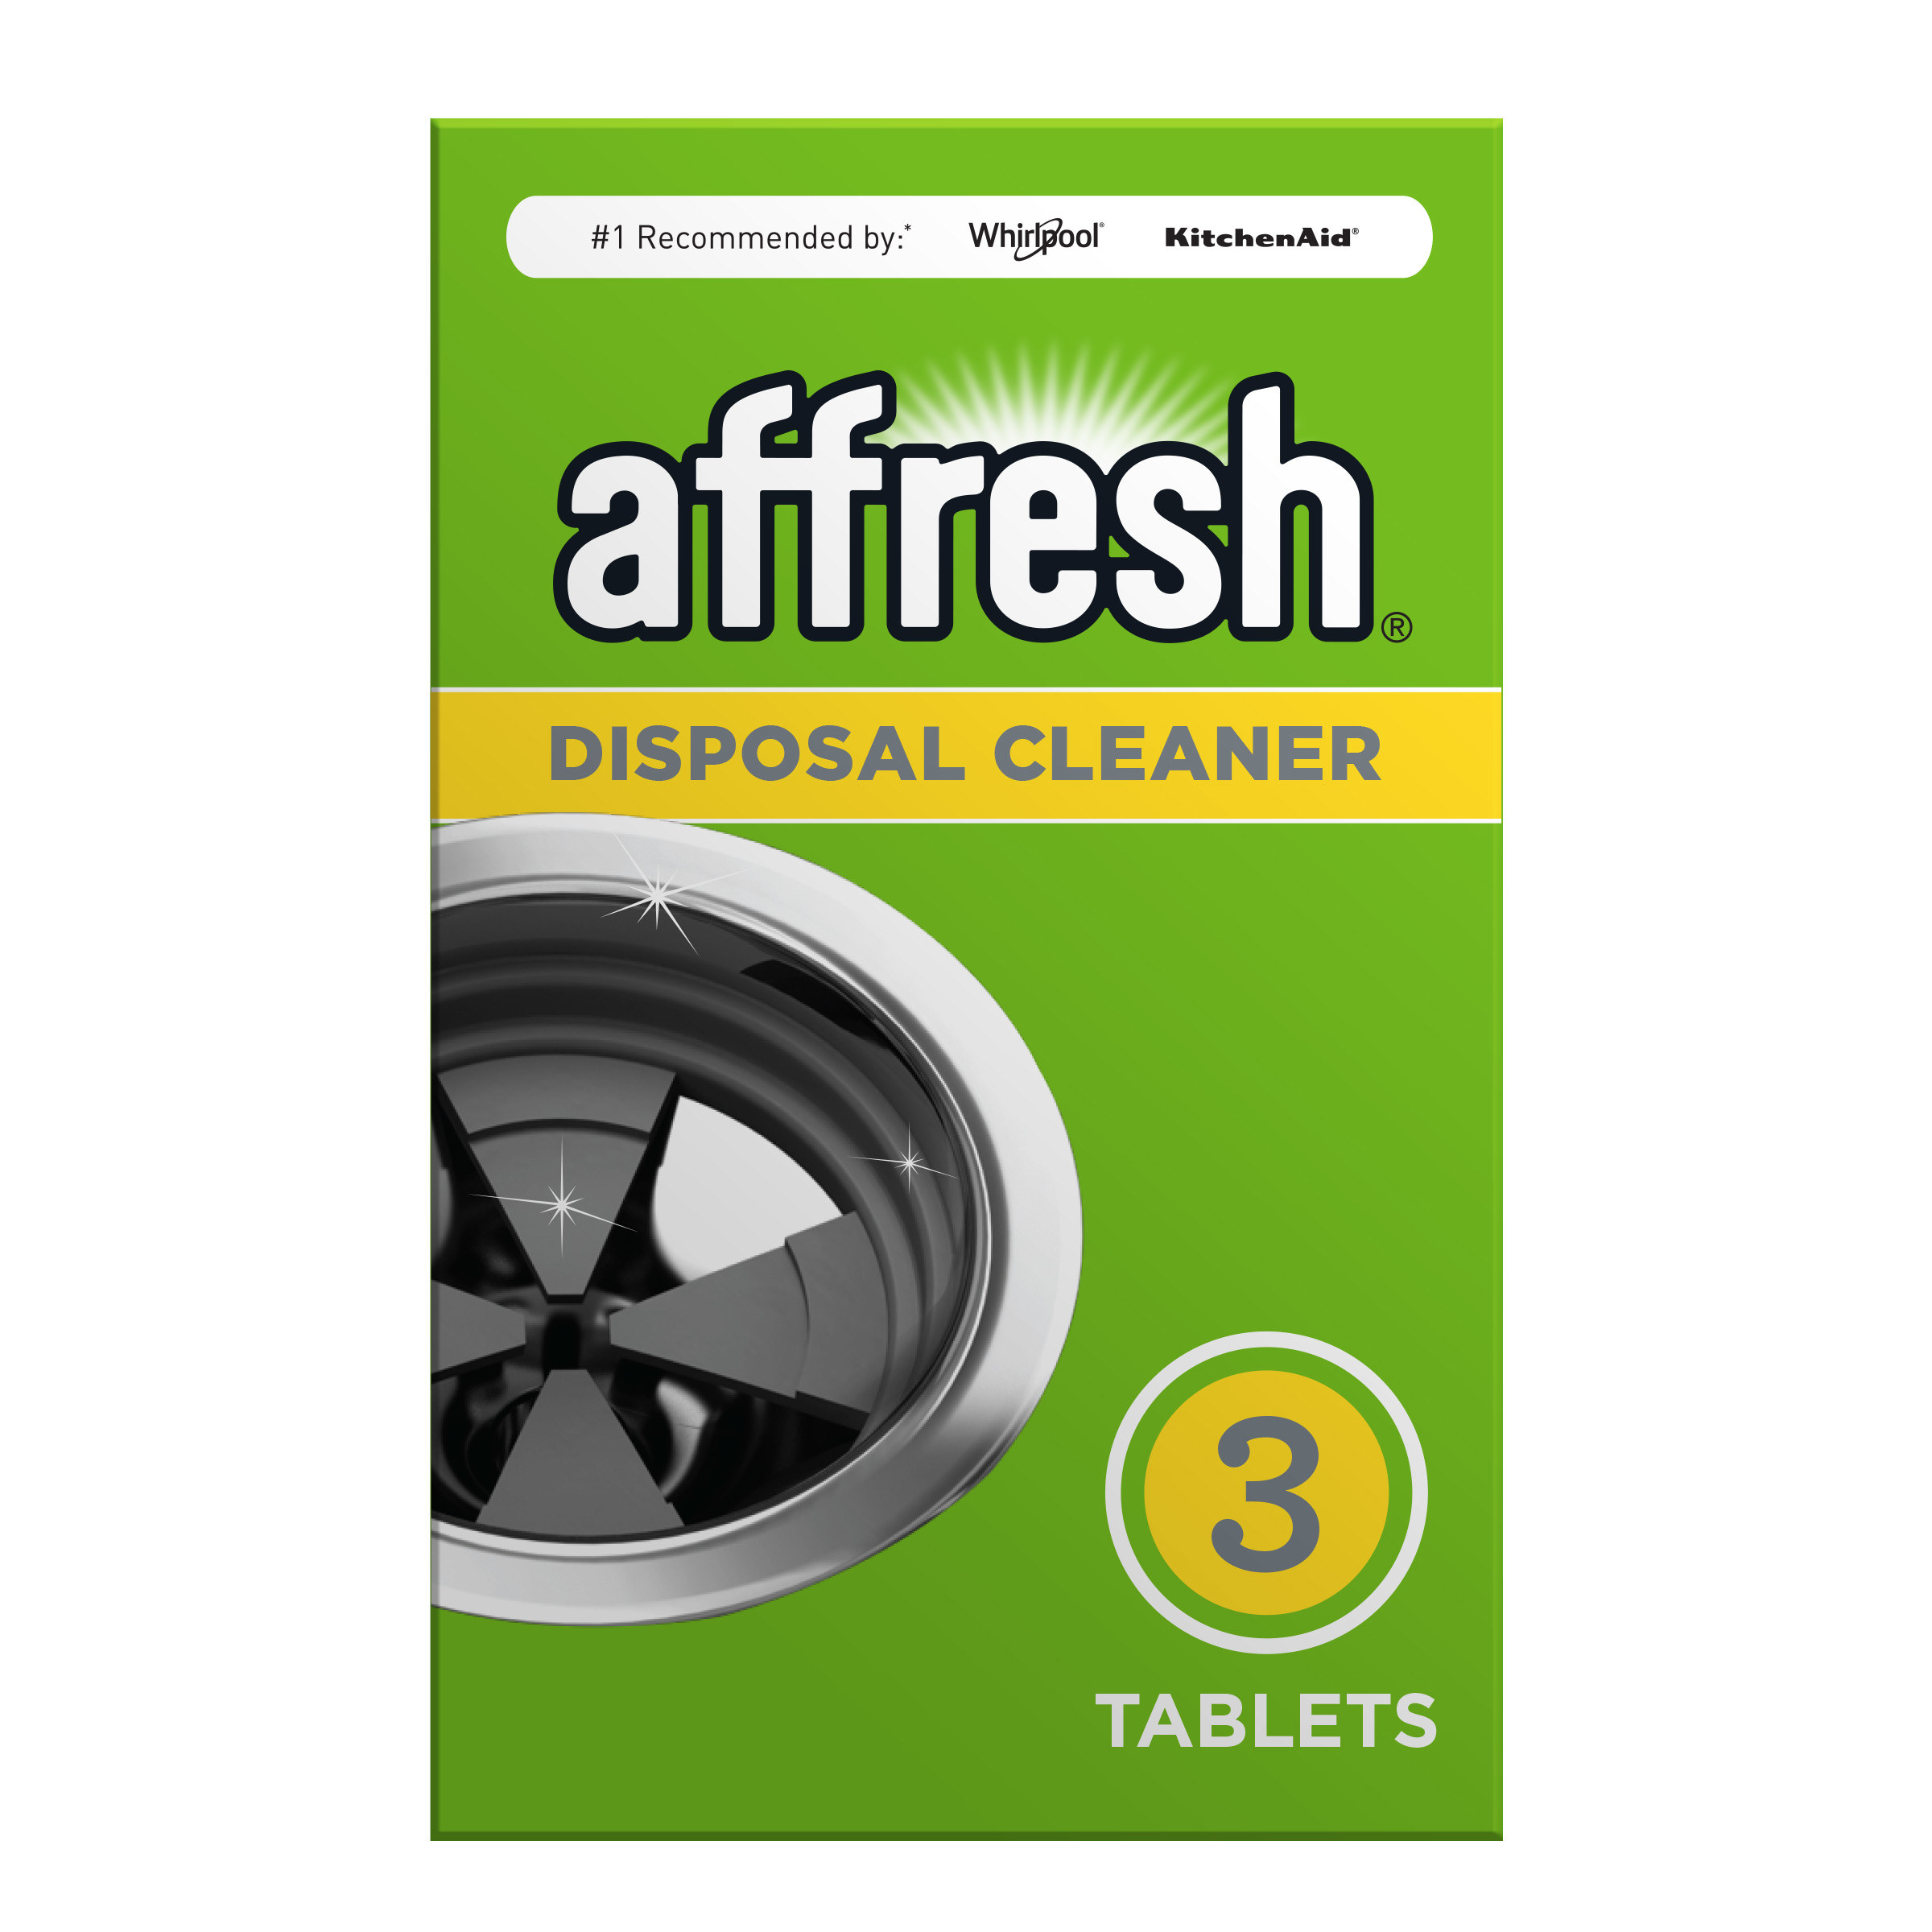 Product photo showing Affresh Garbage Disposal Cleaner outer packaging, recommended by Whirlpool and Kitchen Aid